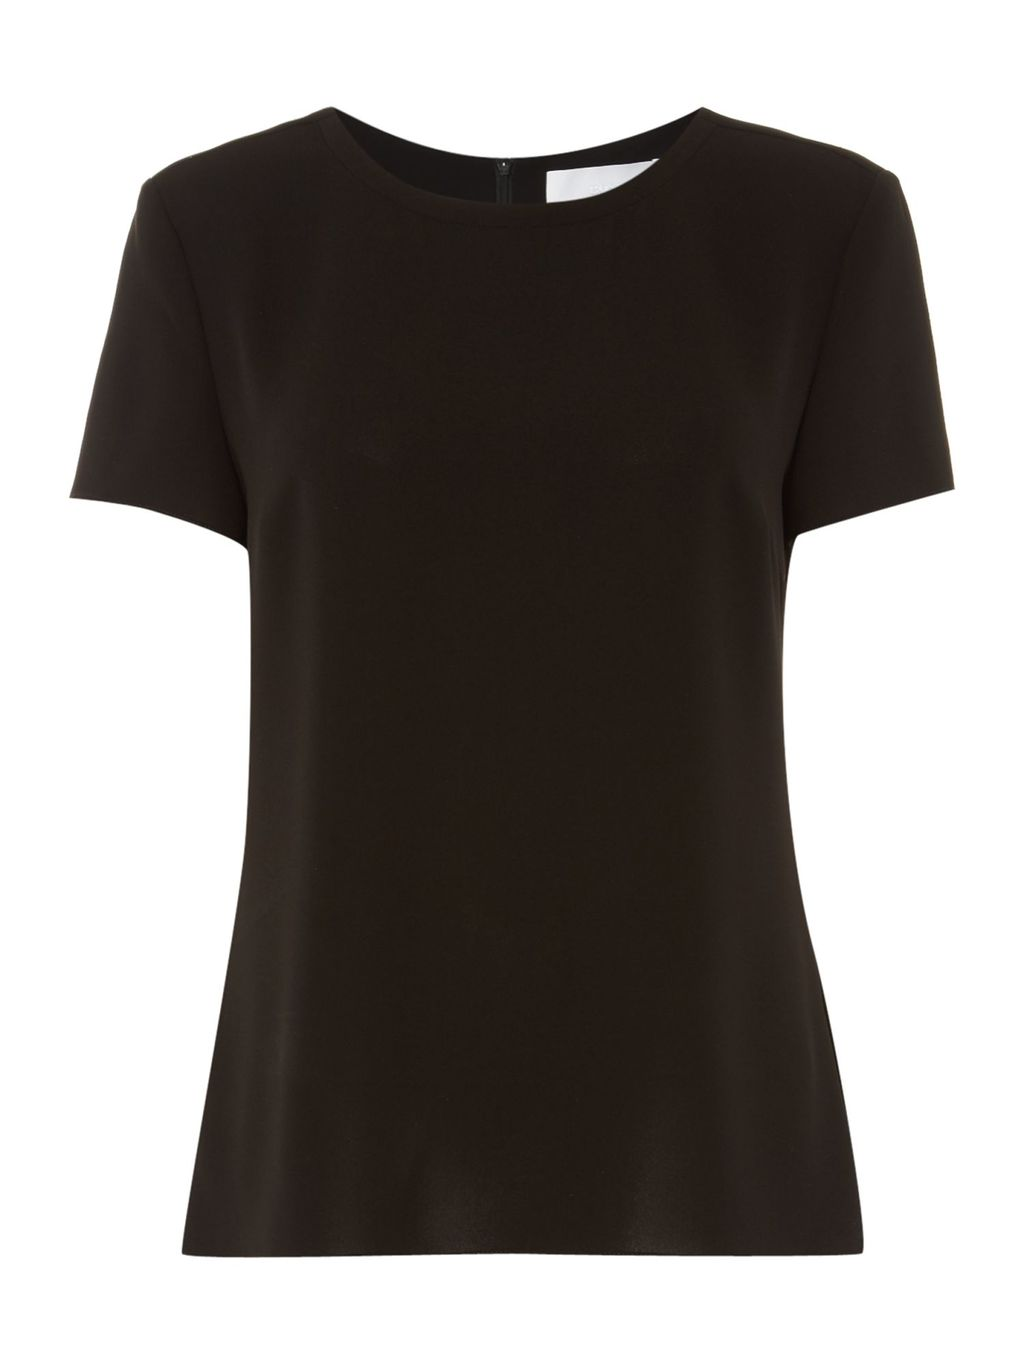 Ilyna Short Sleeve Top, Black - pattern: plain; predominant colour: black; occasions: casual; length: standard; style: top; fit: body skimming; neckline: crew; sleeve length: short sleeve; sleeve style: standard; pattern type: fabric; texture group: jersey - stretchy/drapey; fibres: viscose/rayon - mix; season: s/s 2016; wardrobe: basic